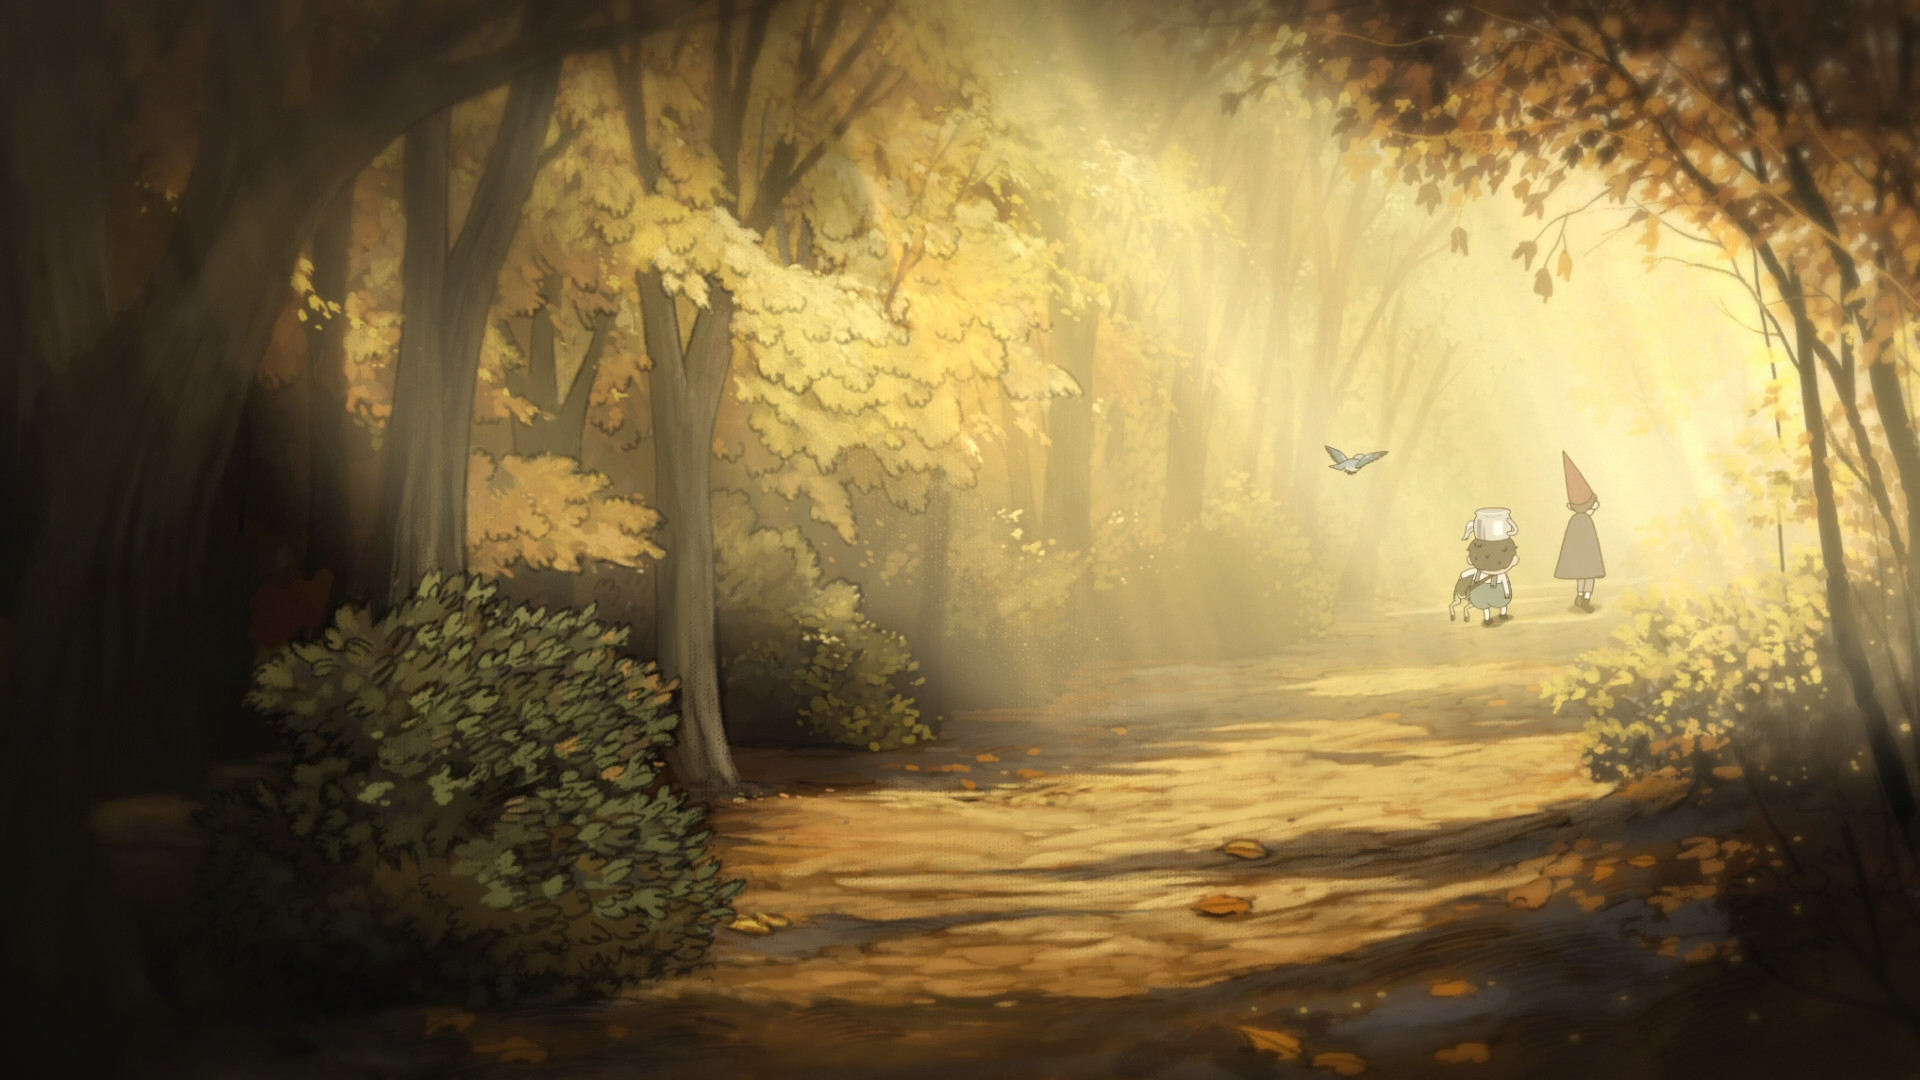 Over The Garden Wall images Overt the garden wall HD wallpaper and  background photos